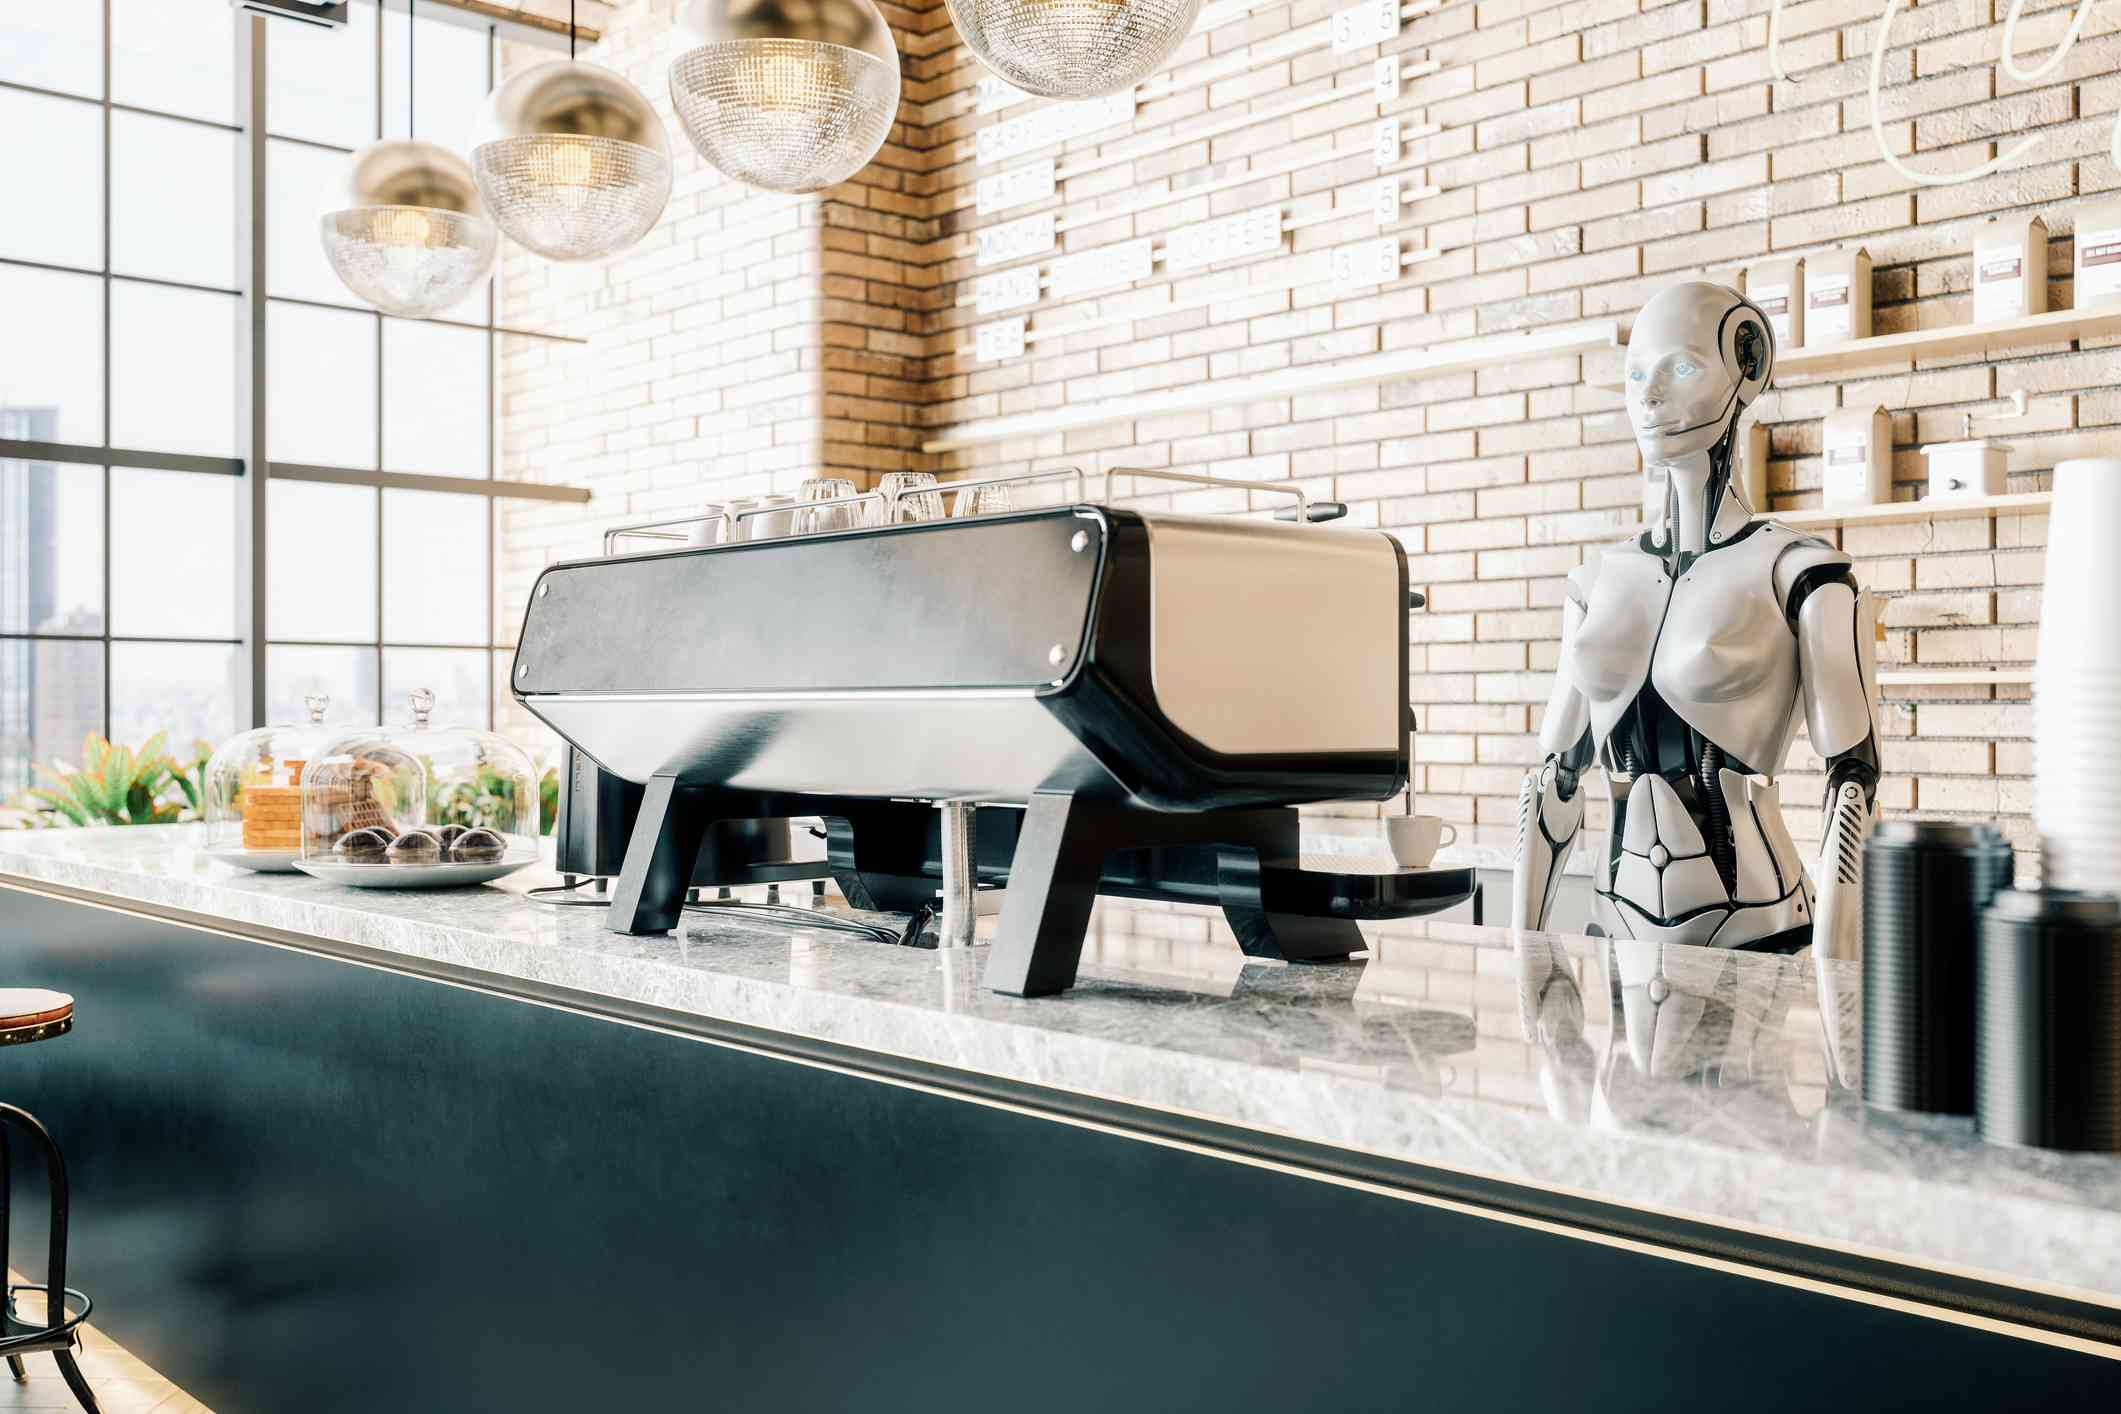 Interior of a third wave coffee shop with robot barista.